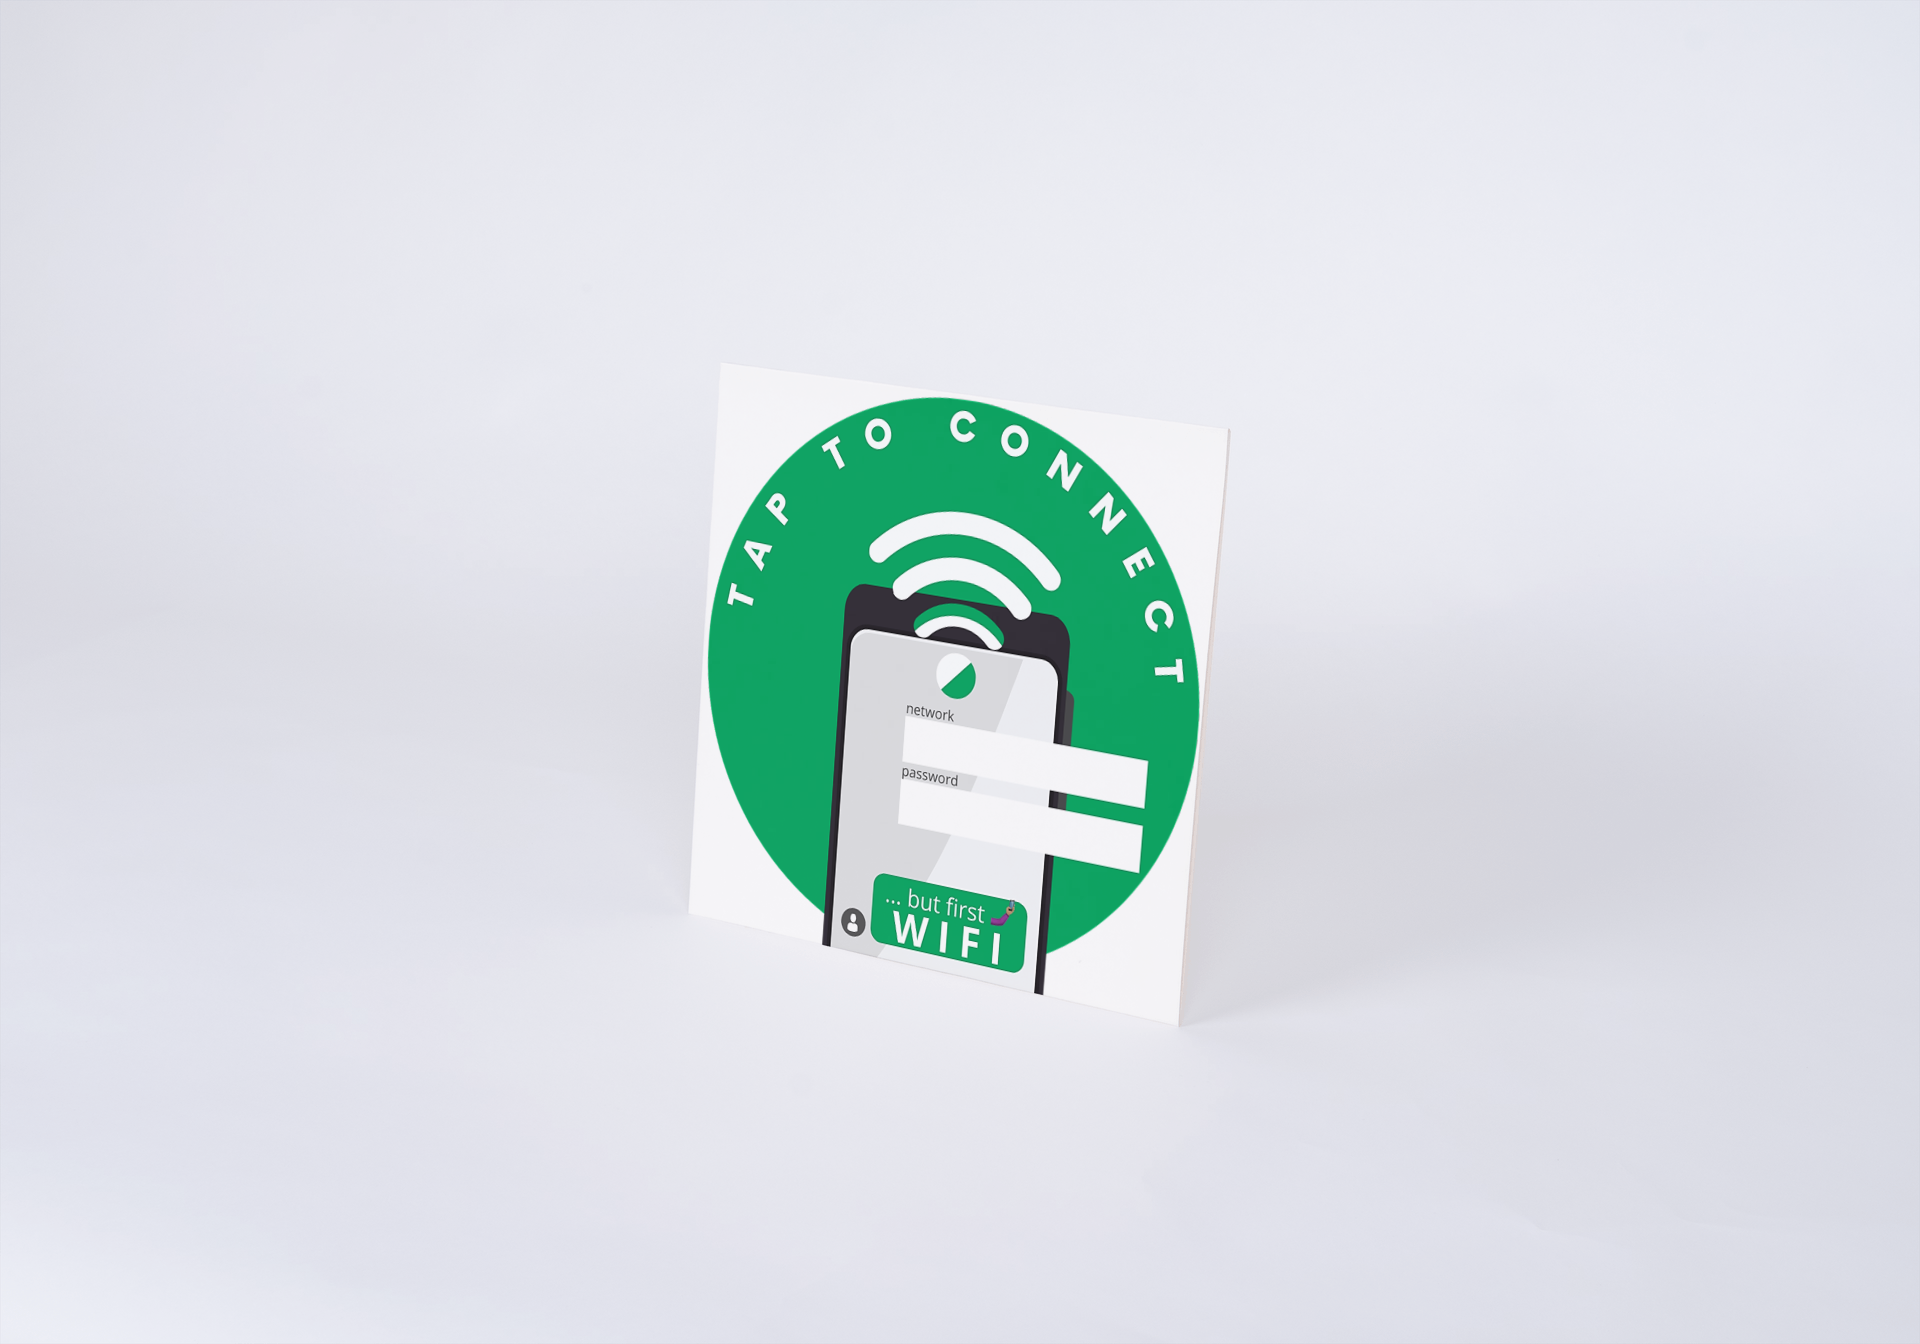 Guest WiFi NFC Sticker - 5 Stickers Pack